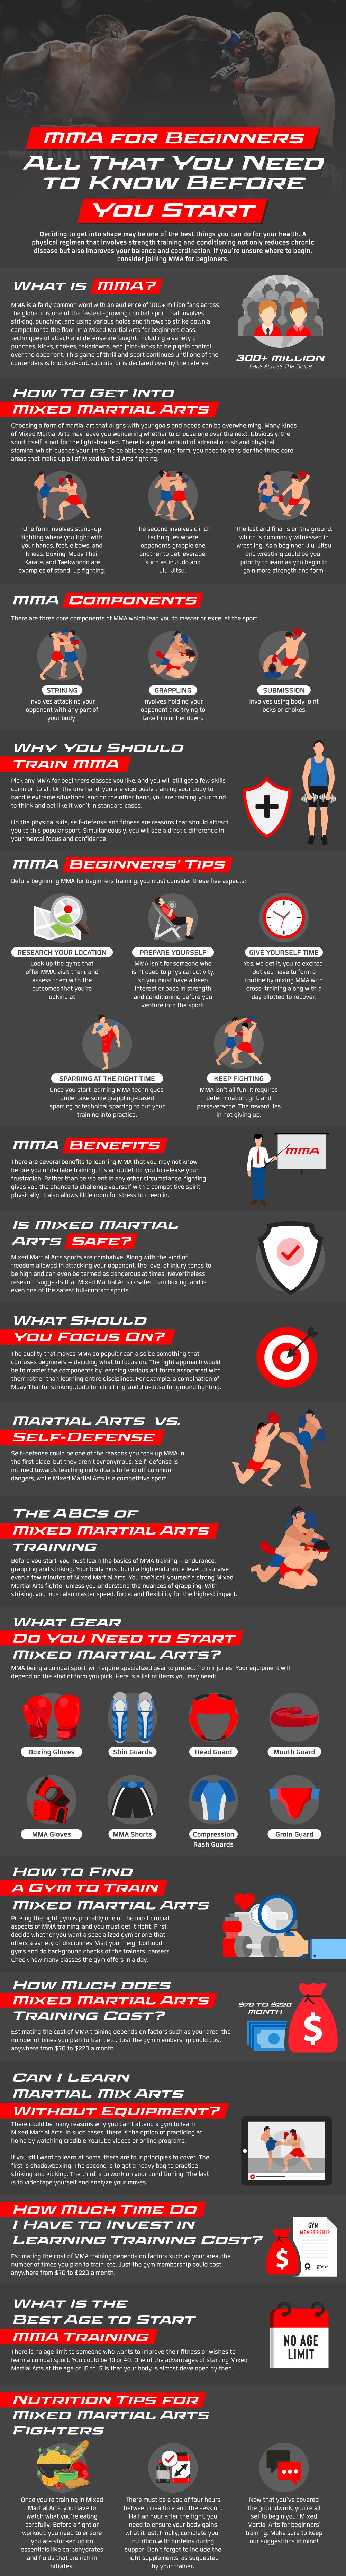 MMA for Beginners Infographic: All That You Need to Know Before You Start